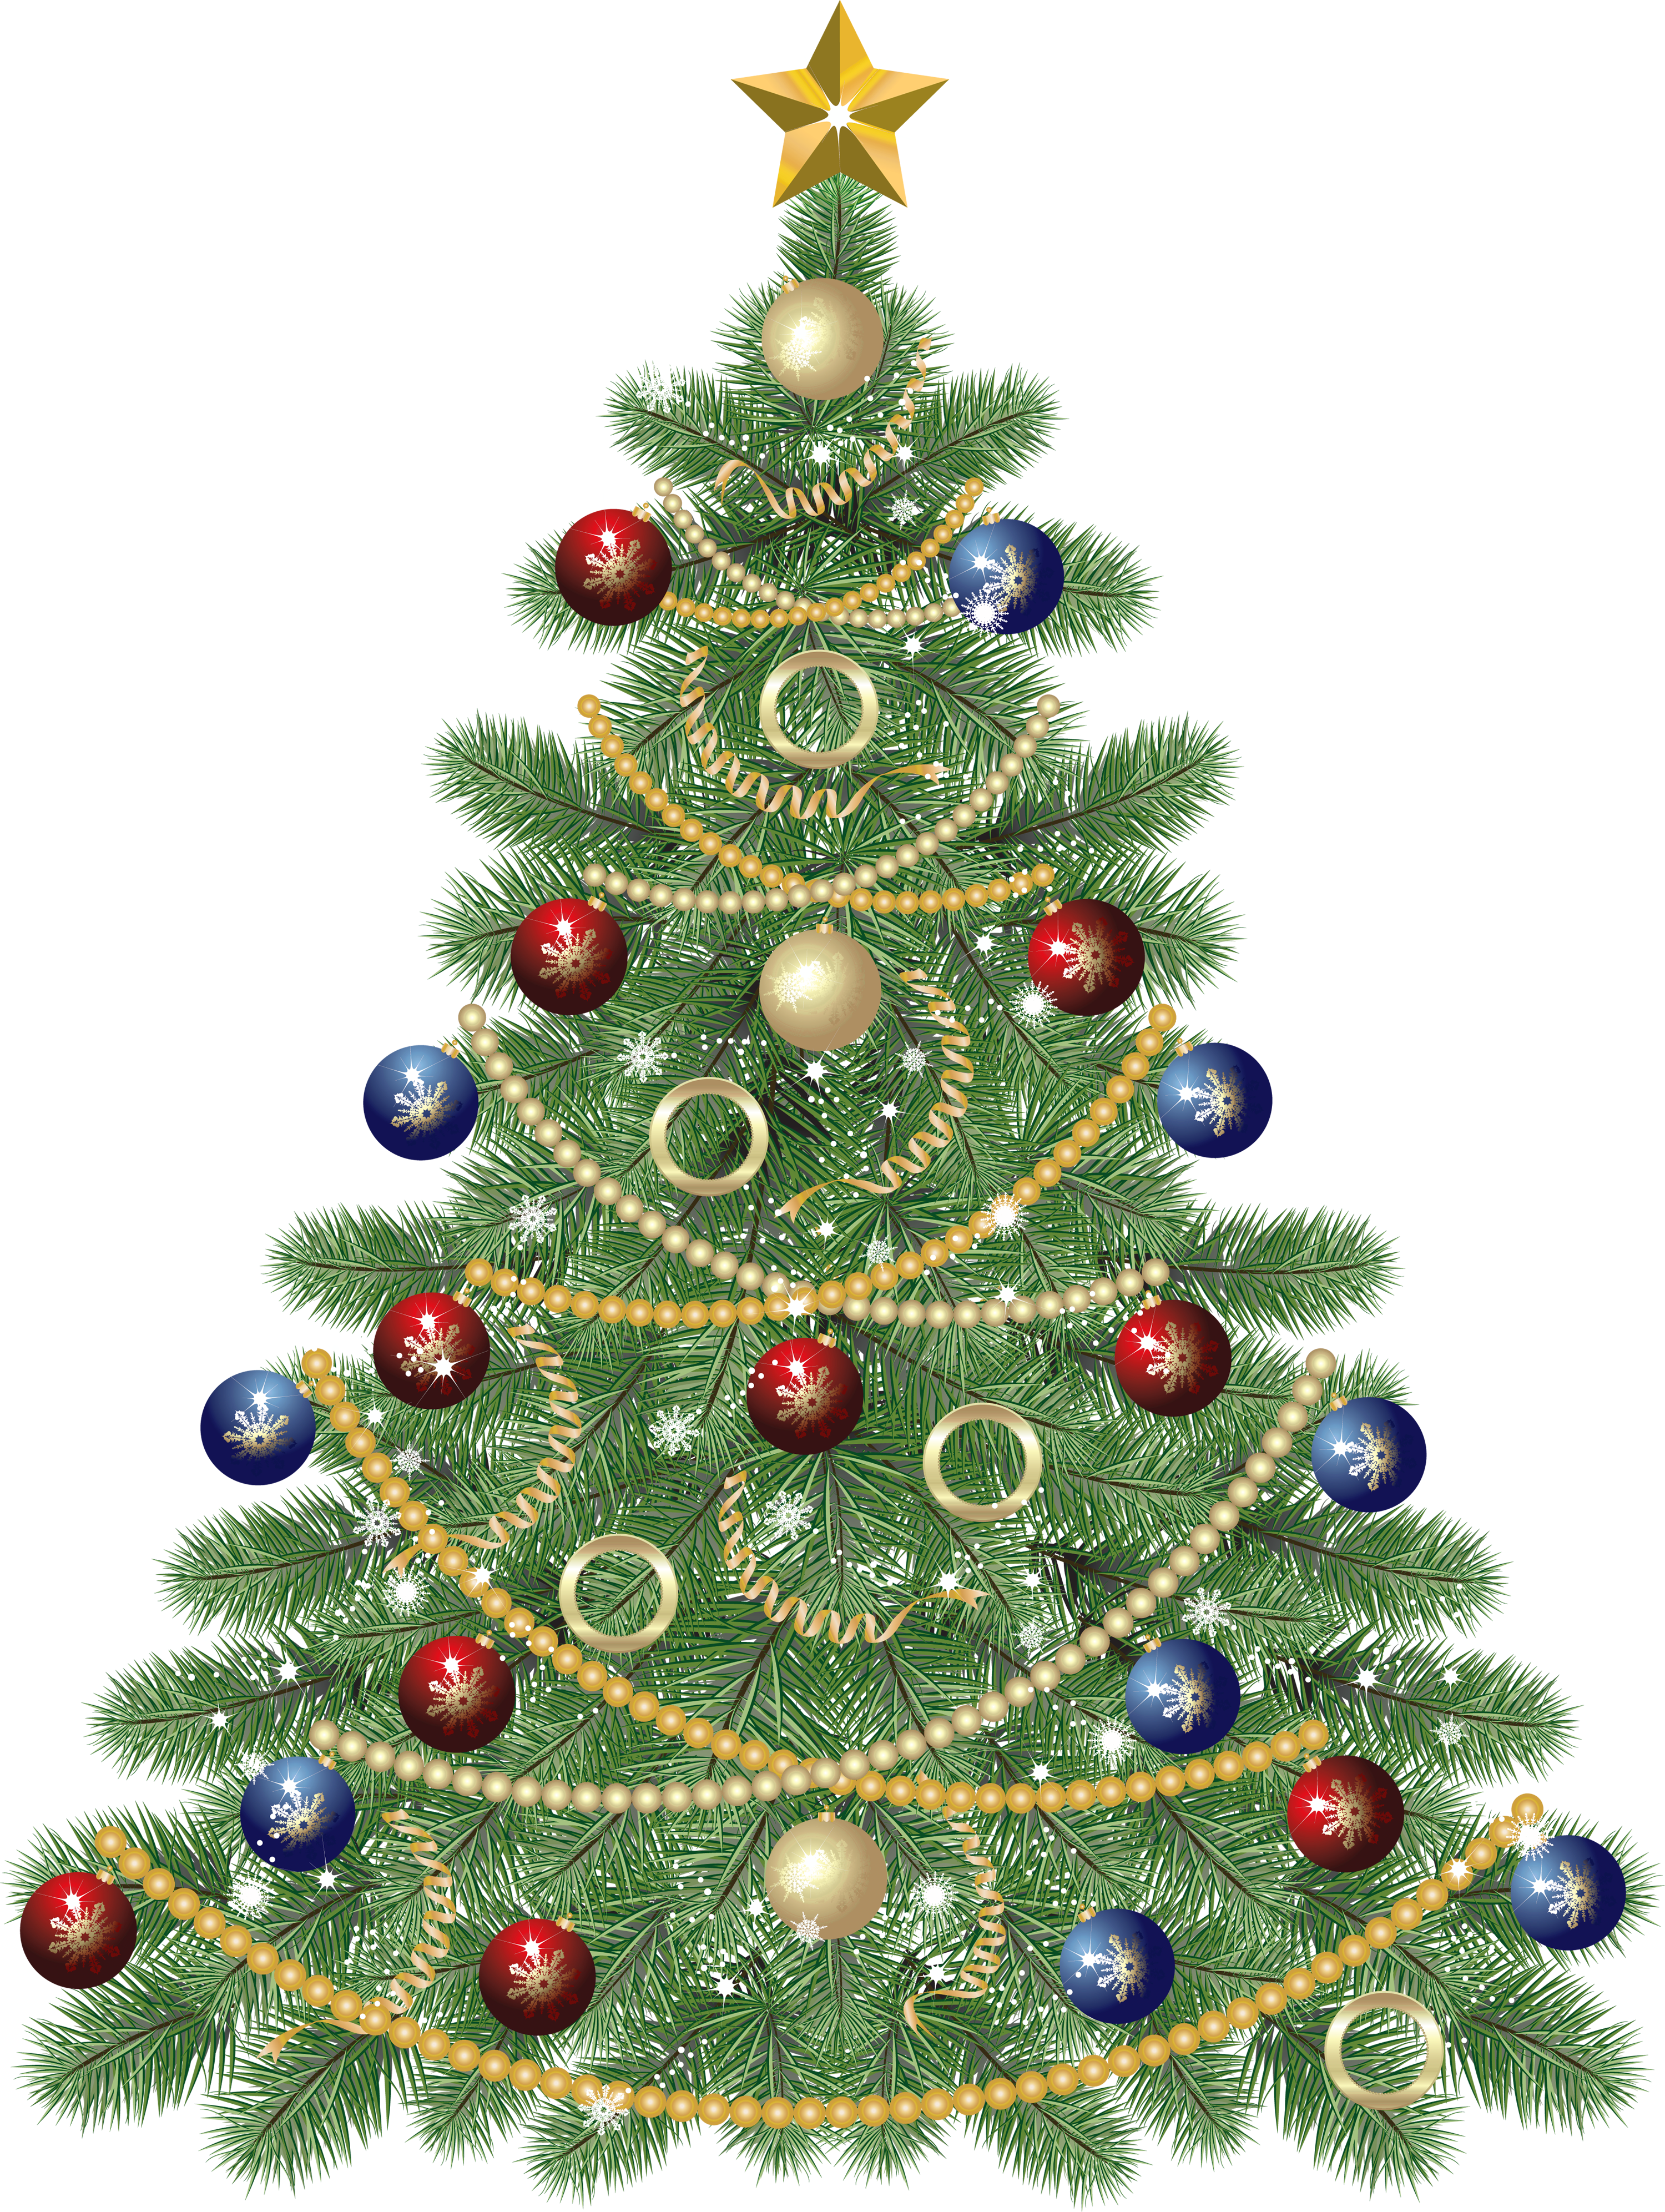 Large Christmas Tree Clipart Clipart Kid Christmas Tree Images Christmas Tree Clipart Christmas Ornament Sets